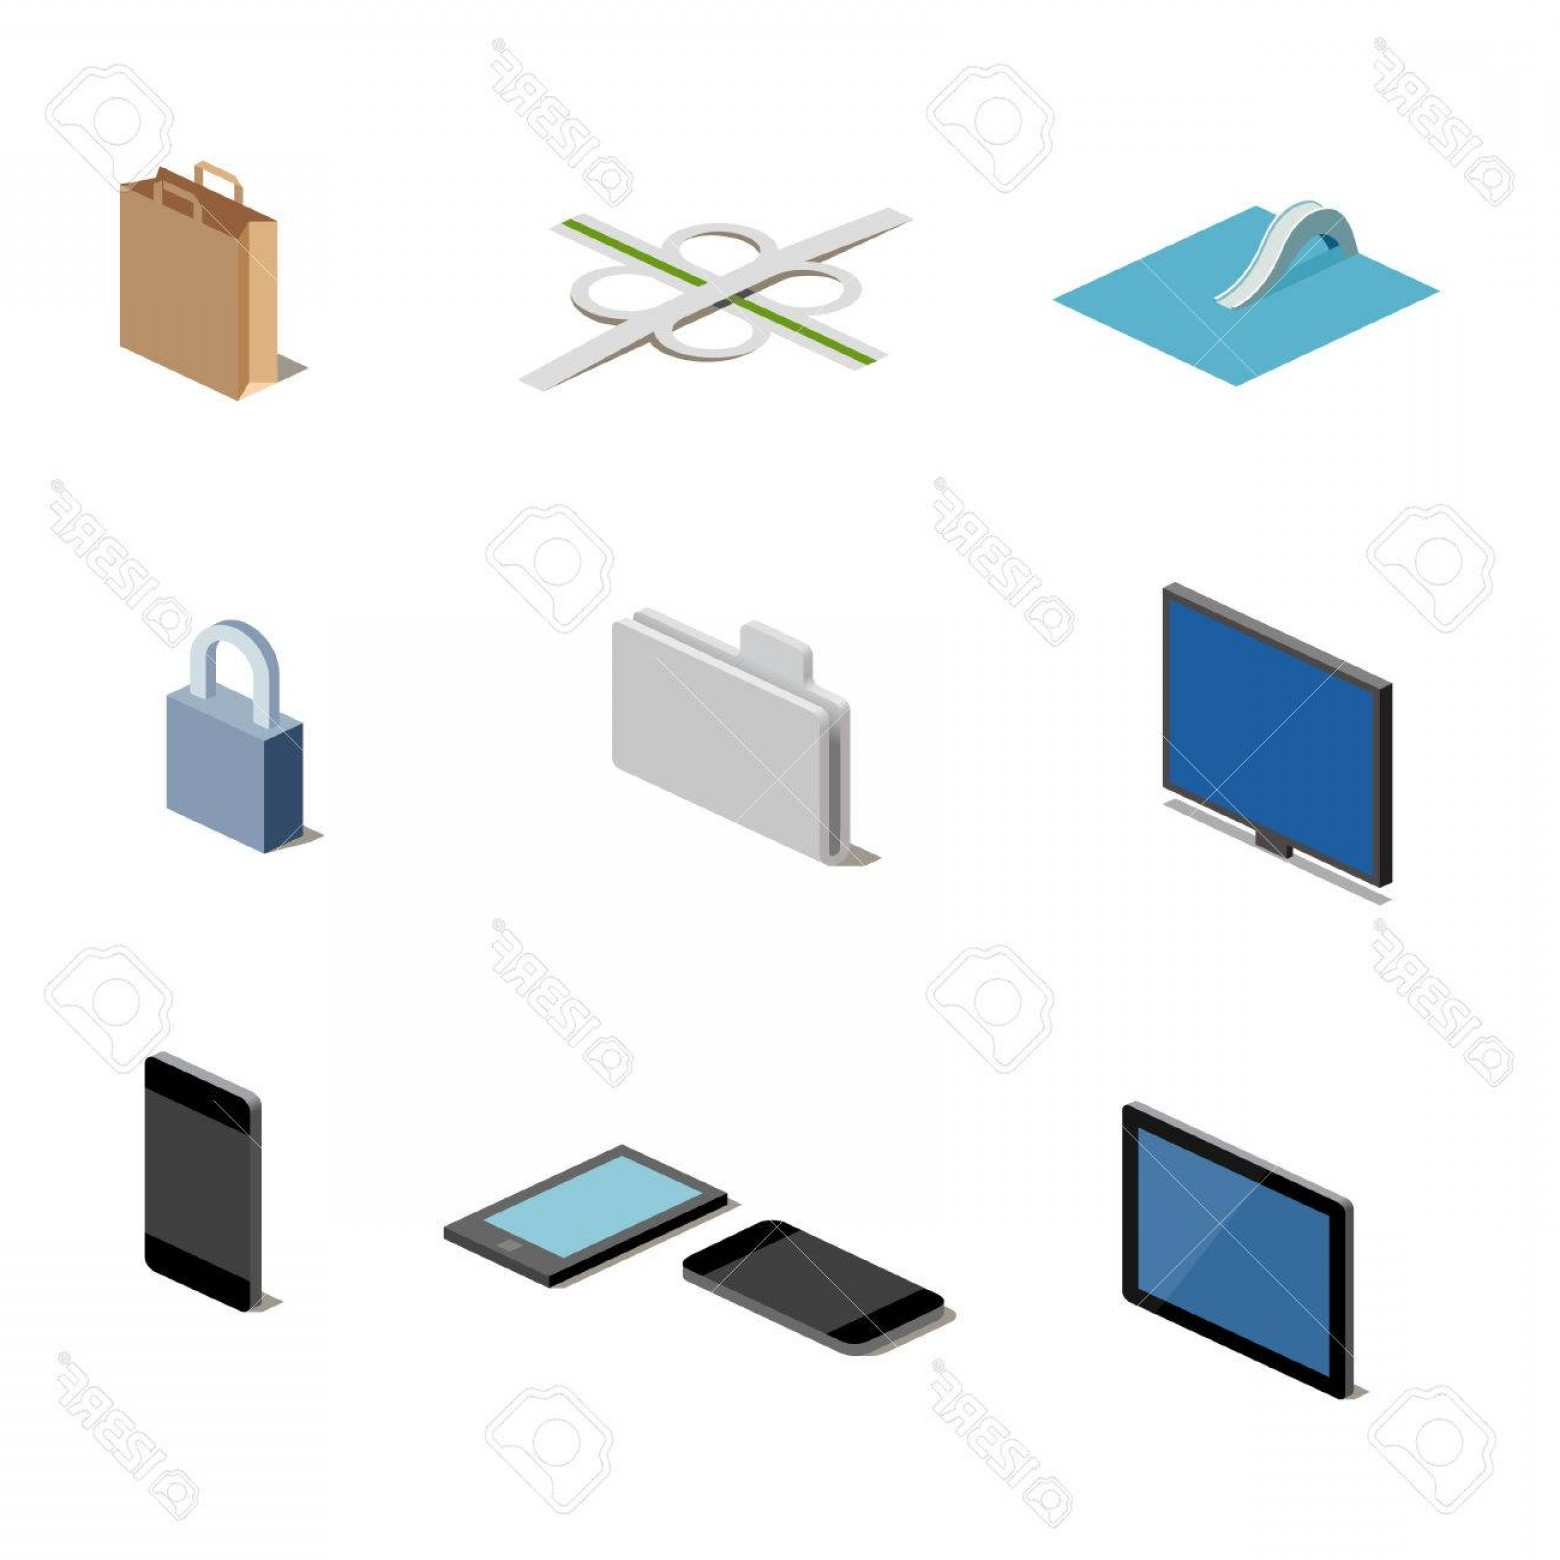 Folder Tab Vectors: Photoa Set Of Vector Media Icons In Isometric Format Including Easy Safe Shop Guidepost Folder Screen Tab